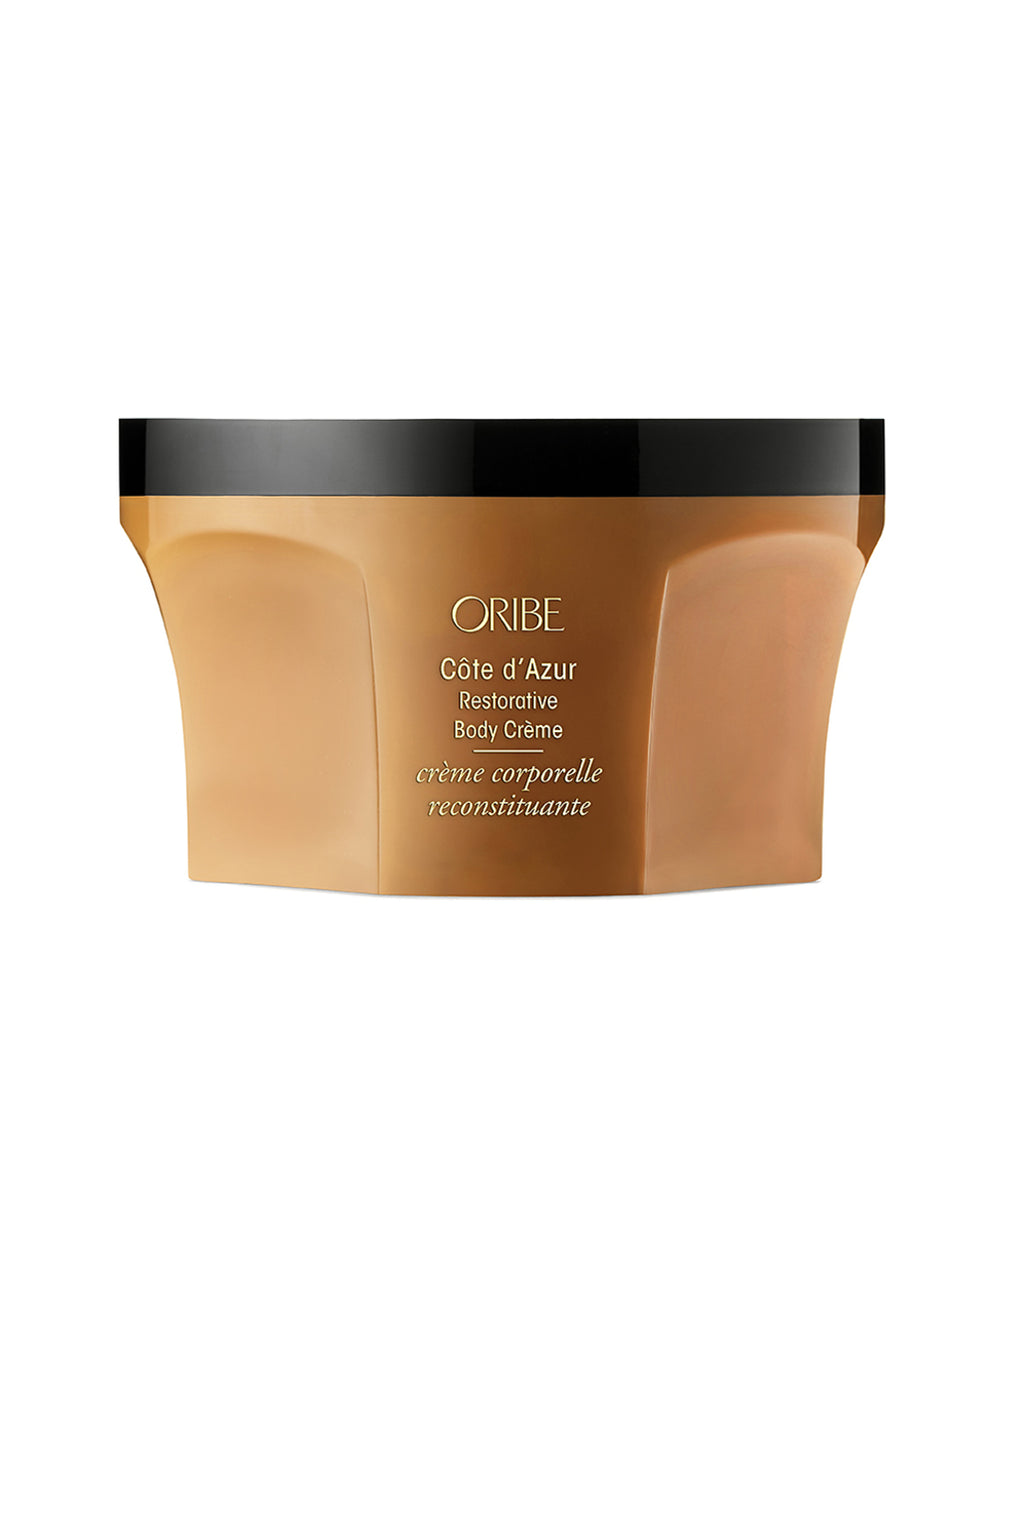 COTE D'AZUR RESORATIVE BODY CREME - Jayden Presleigh, The Salon